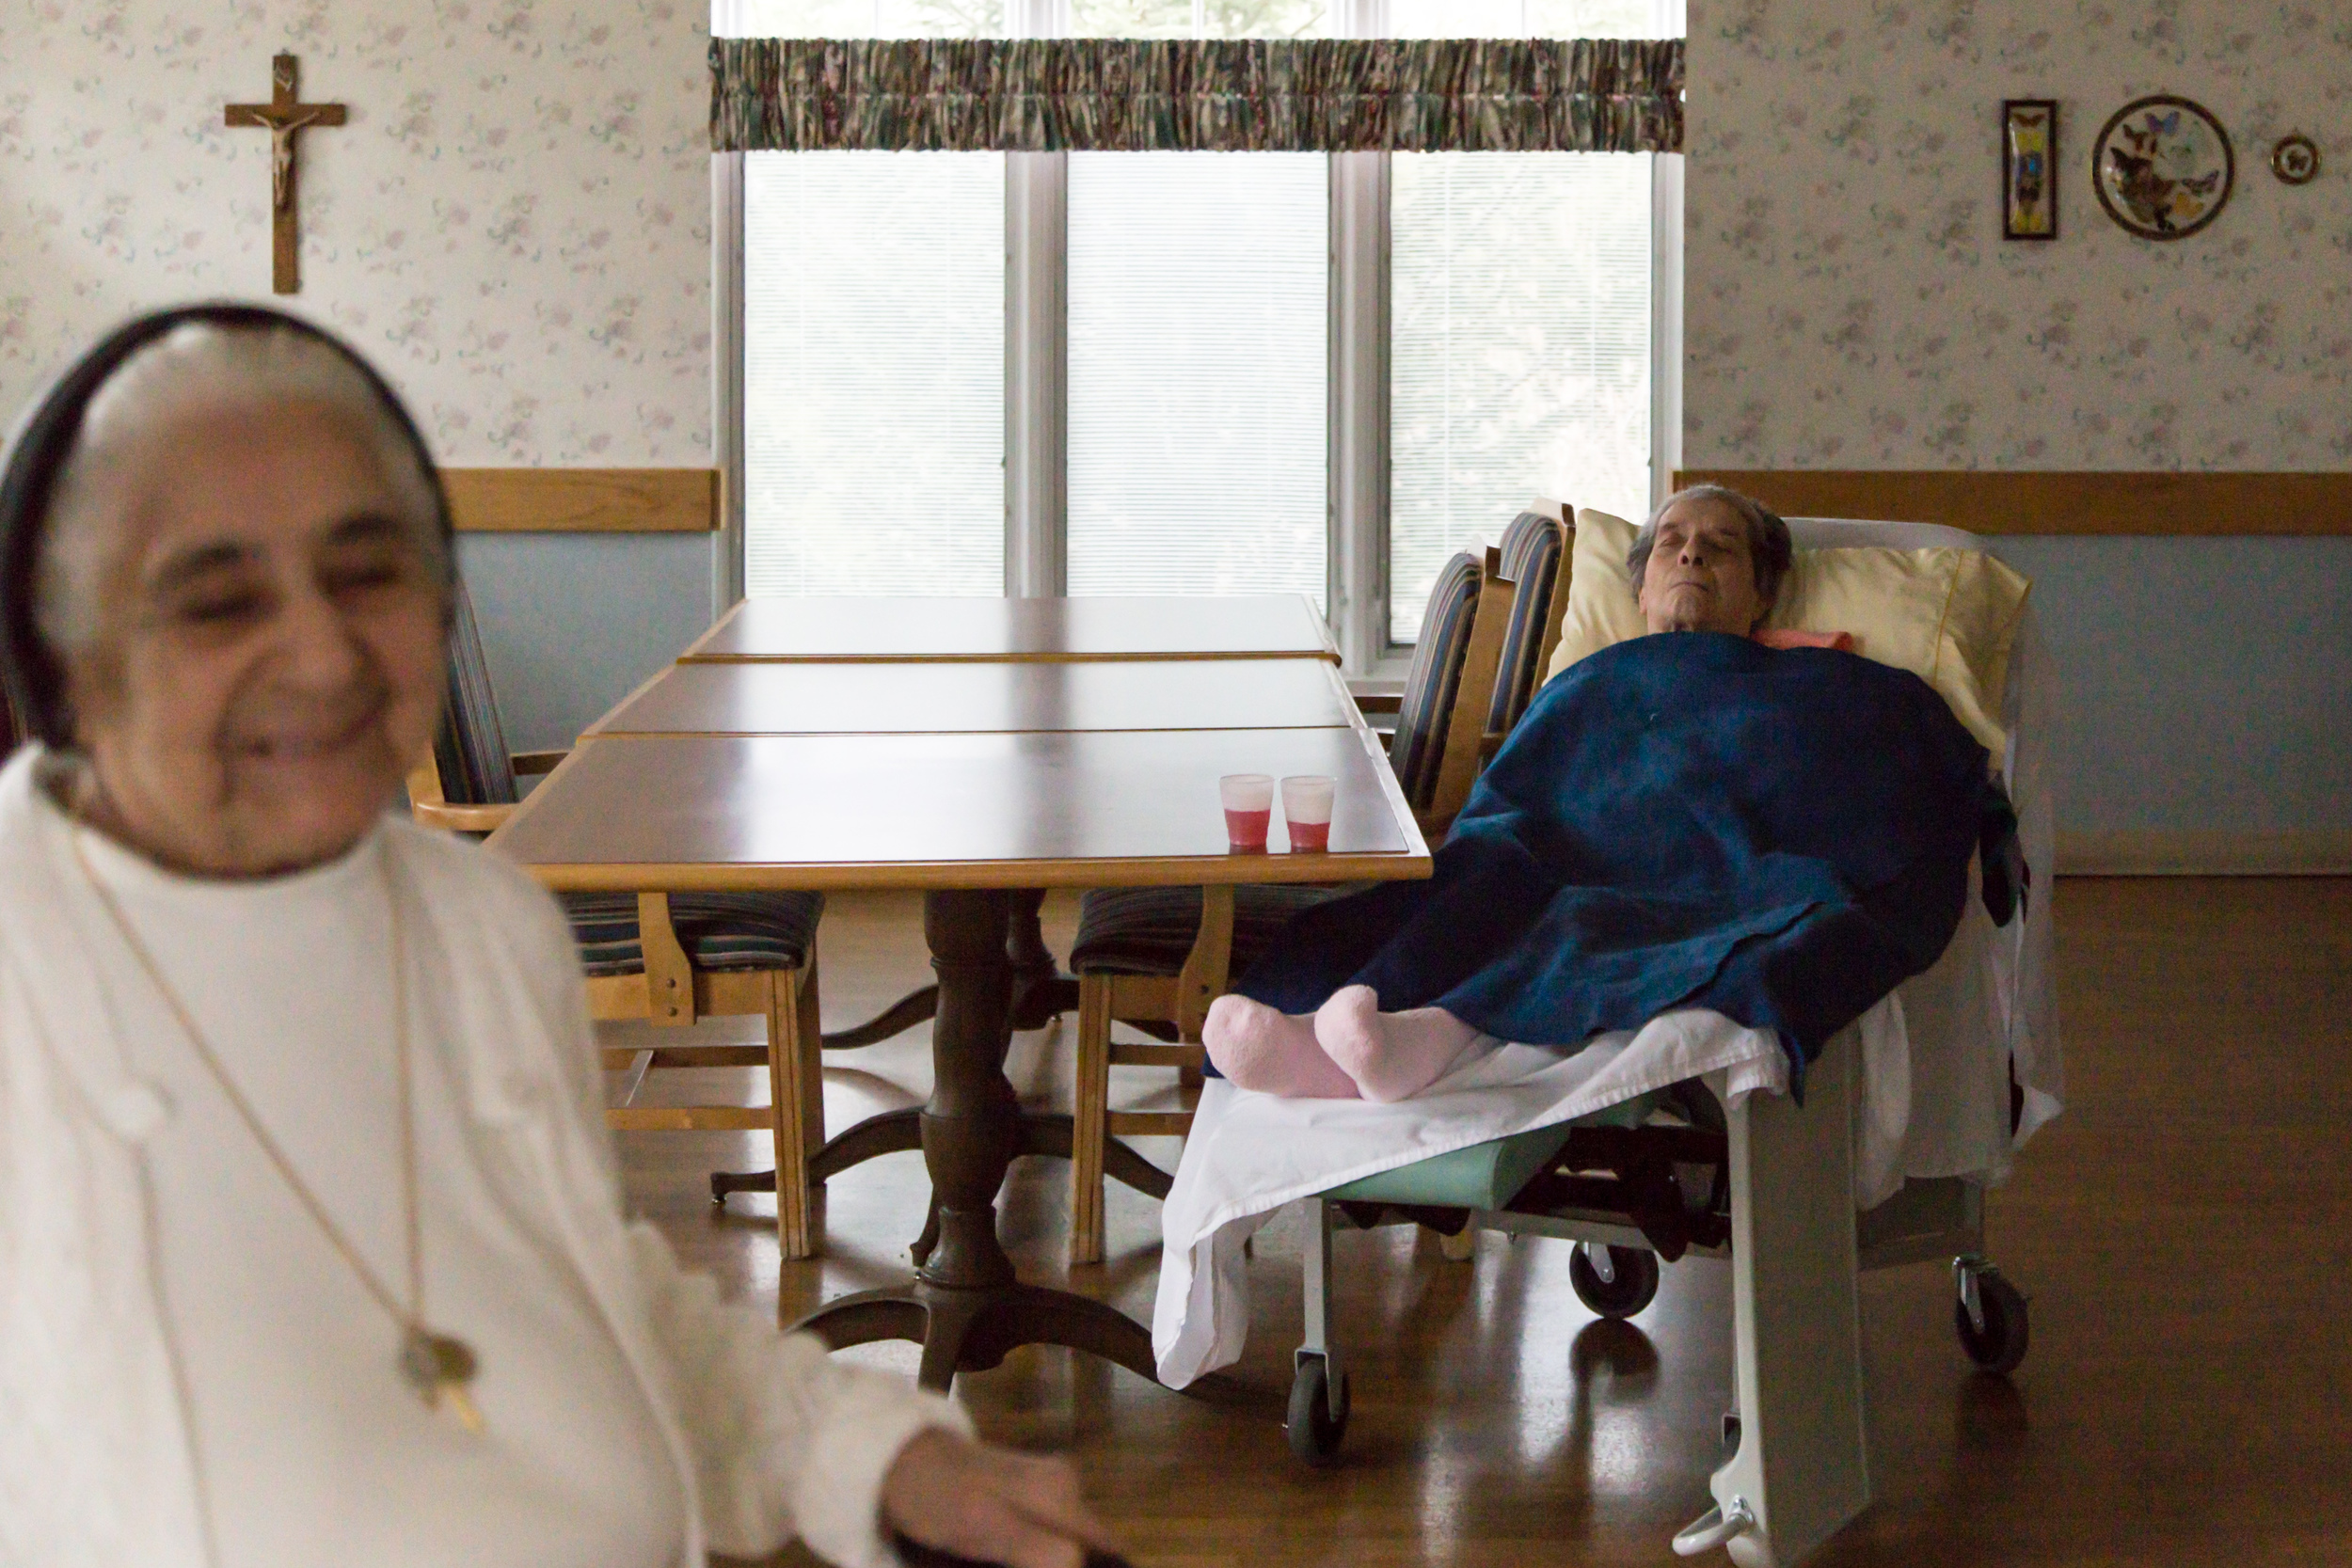 Approximately eighty aging Sisters live in the long-term care facility of Villa Walsh. They are able to maintain the opportunity to stay within the boundaries of their community encircled by Sisterly support.